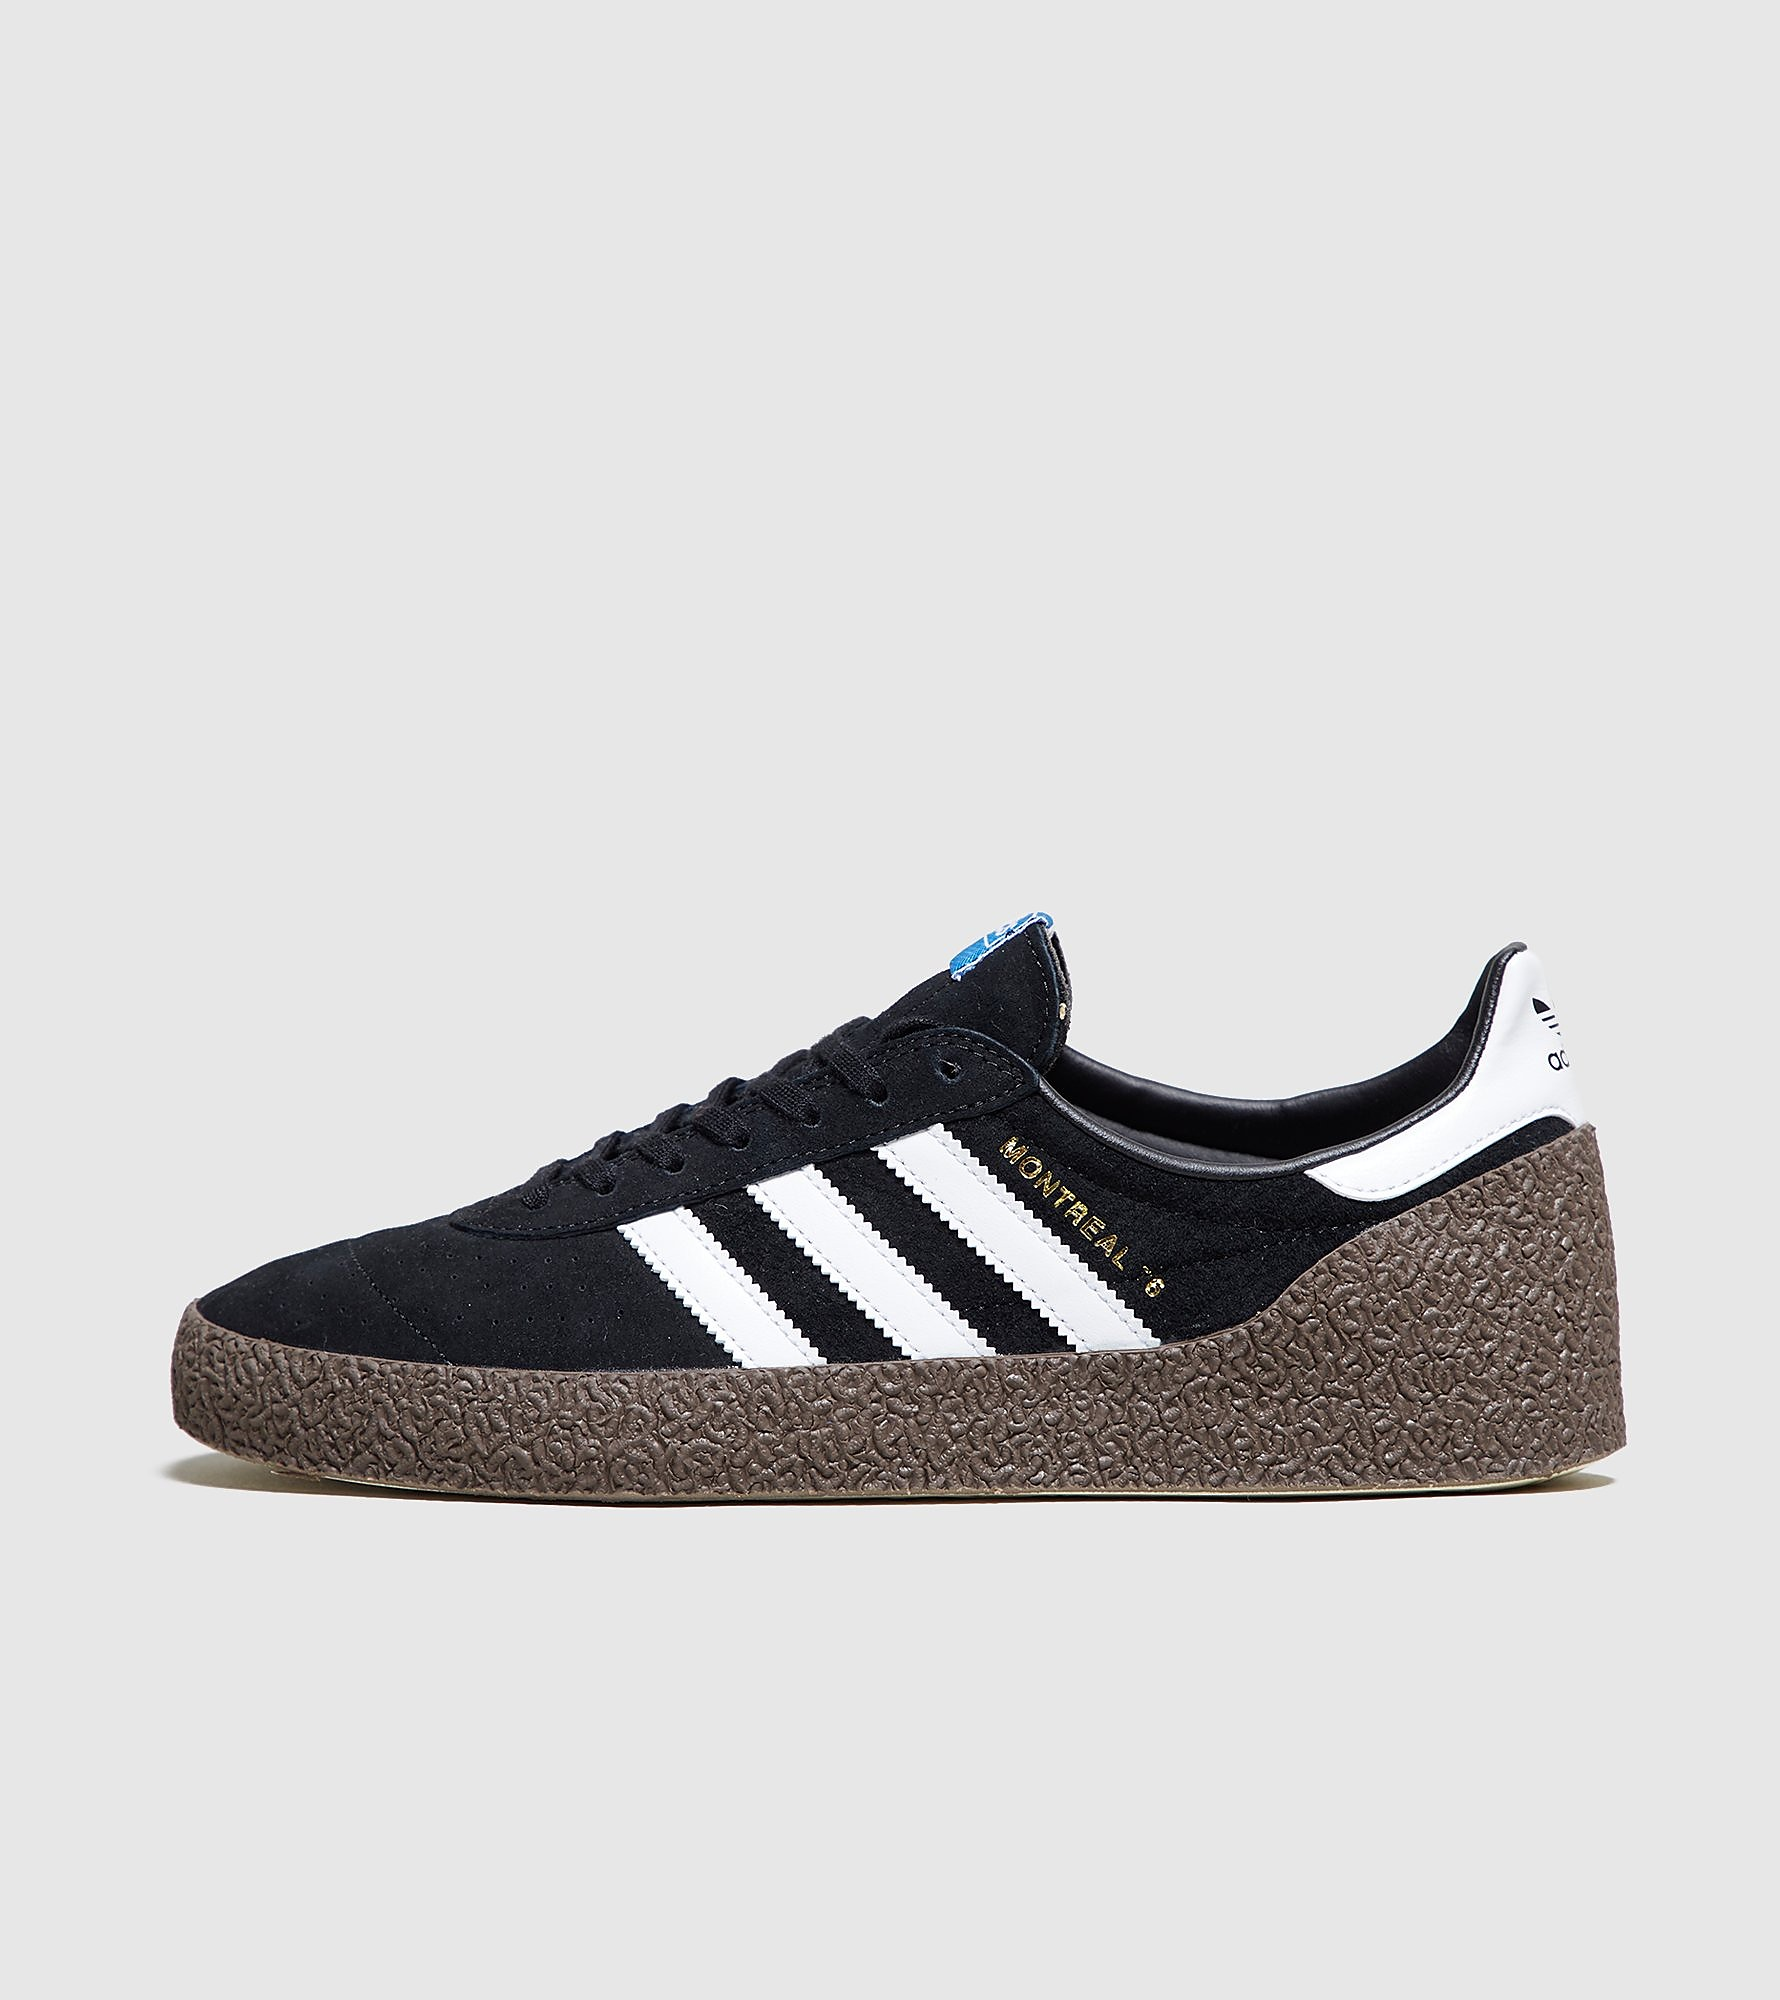 adidas Originals Montreal '76